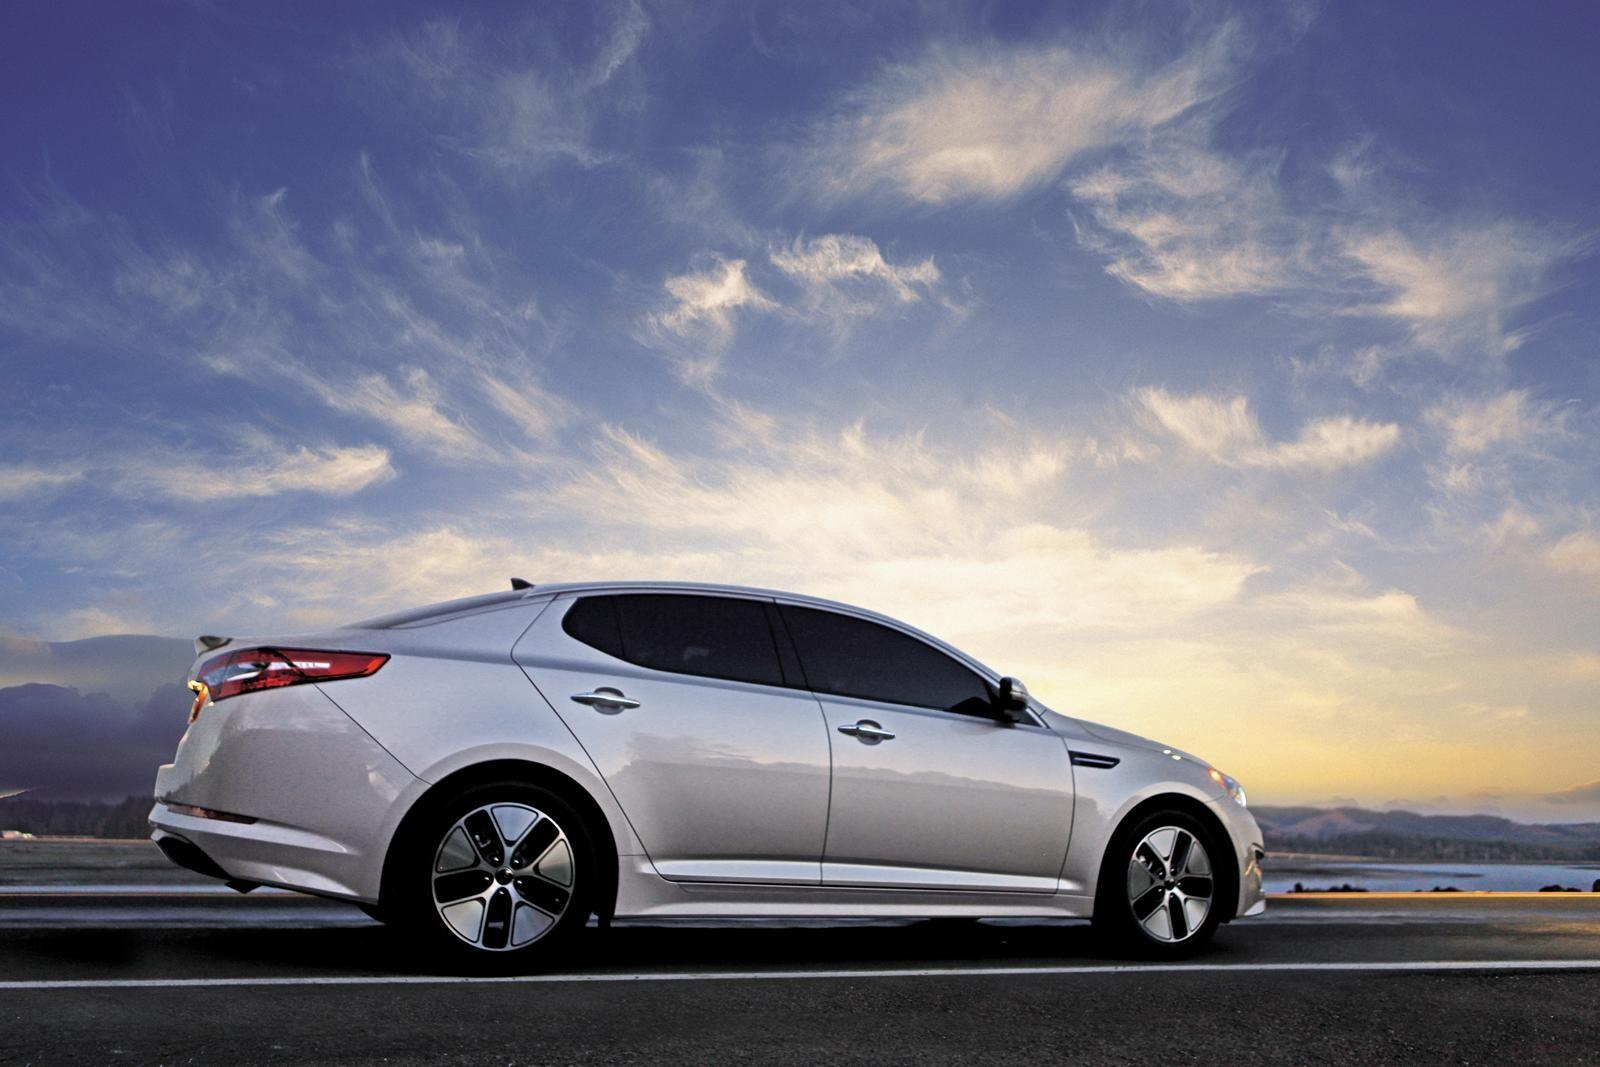 Kia Optima Hybrid 2011 photo 64578 pictures at high resolution